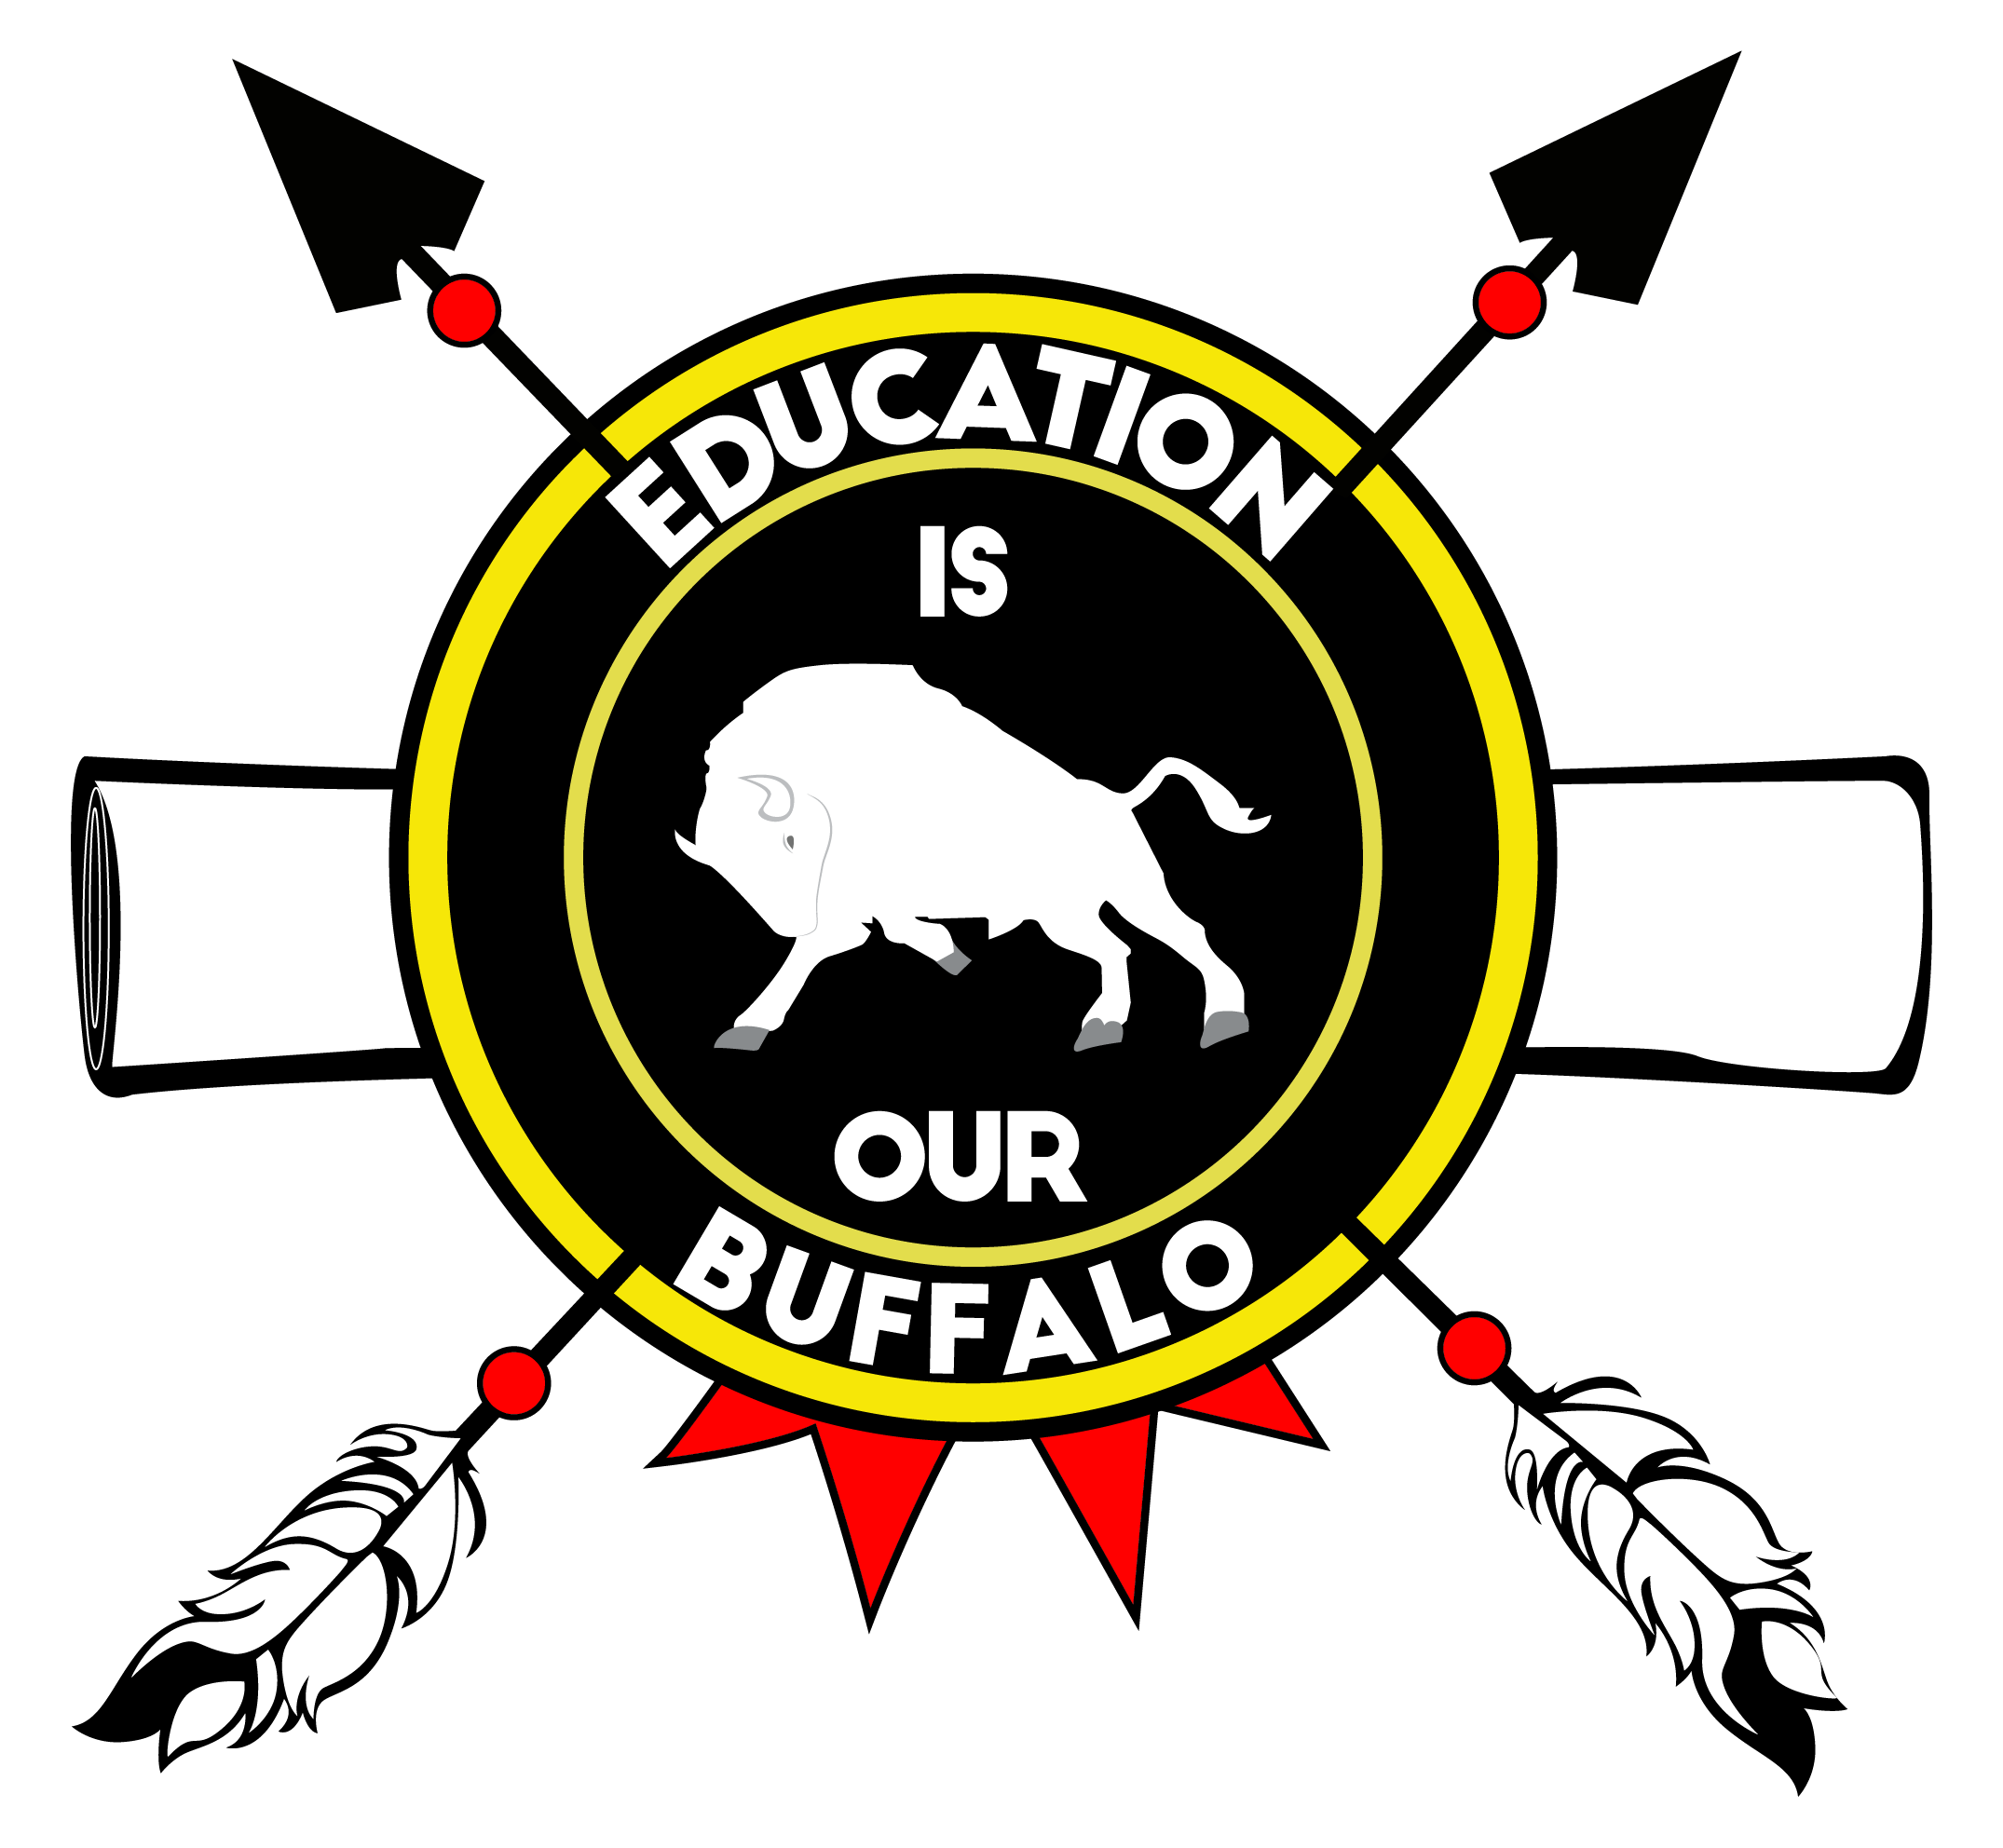 Education Is Our Buffalo